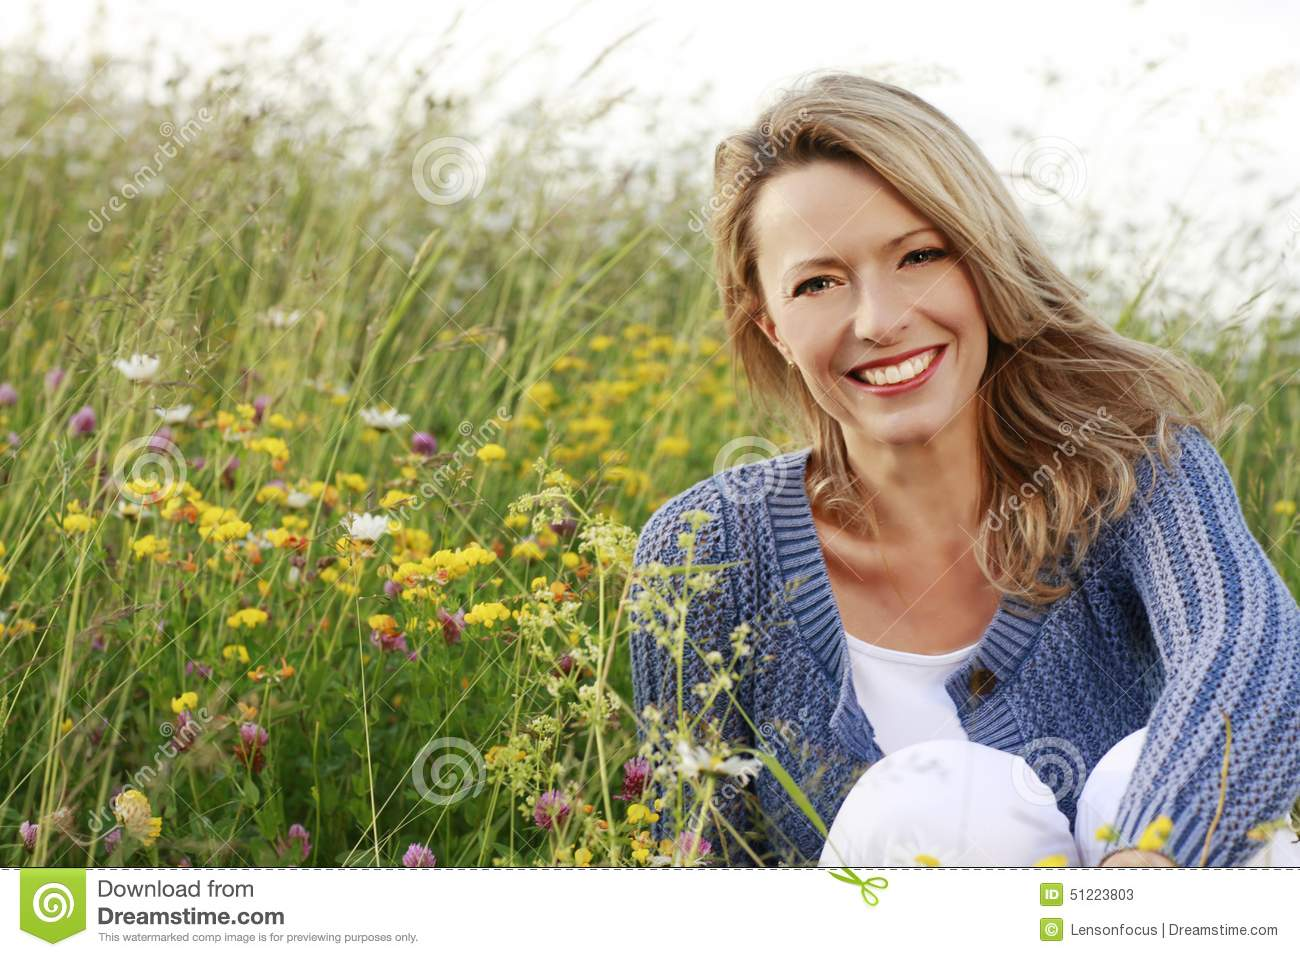 happy-middle-aged-woman-wild-flower-field-smiling-51223803.jpg